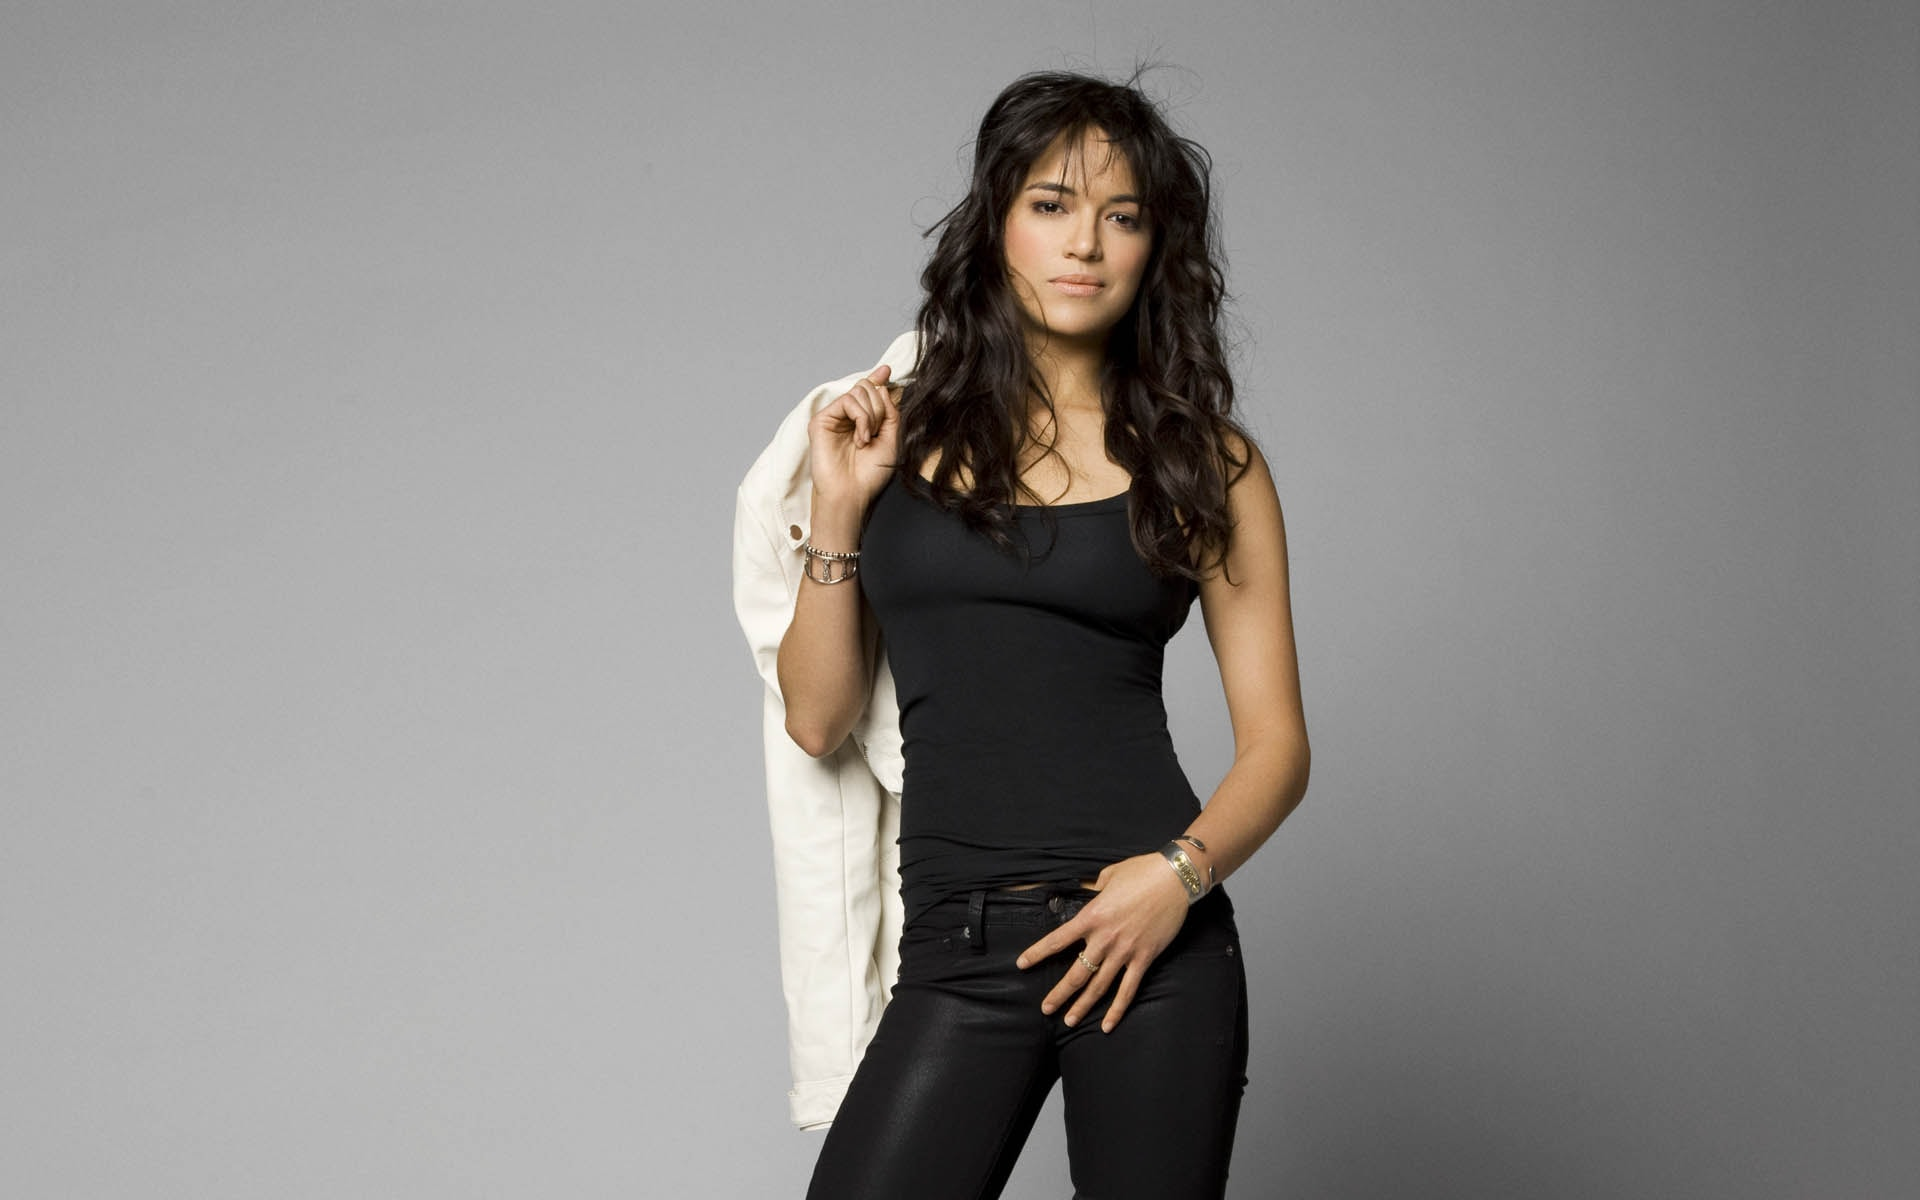 Michelle Rodriguez Widescreen for desktop